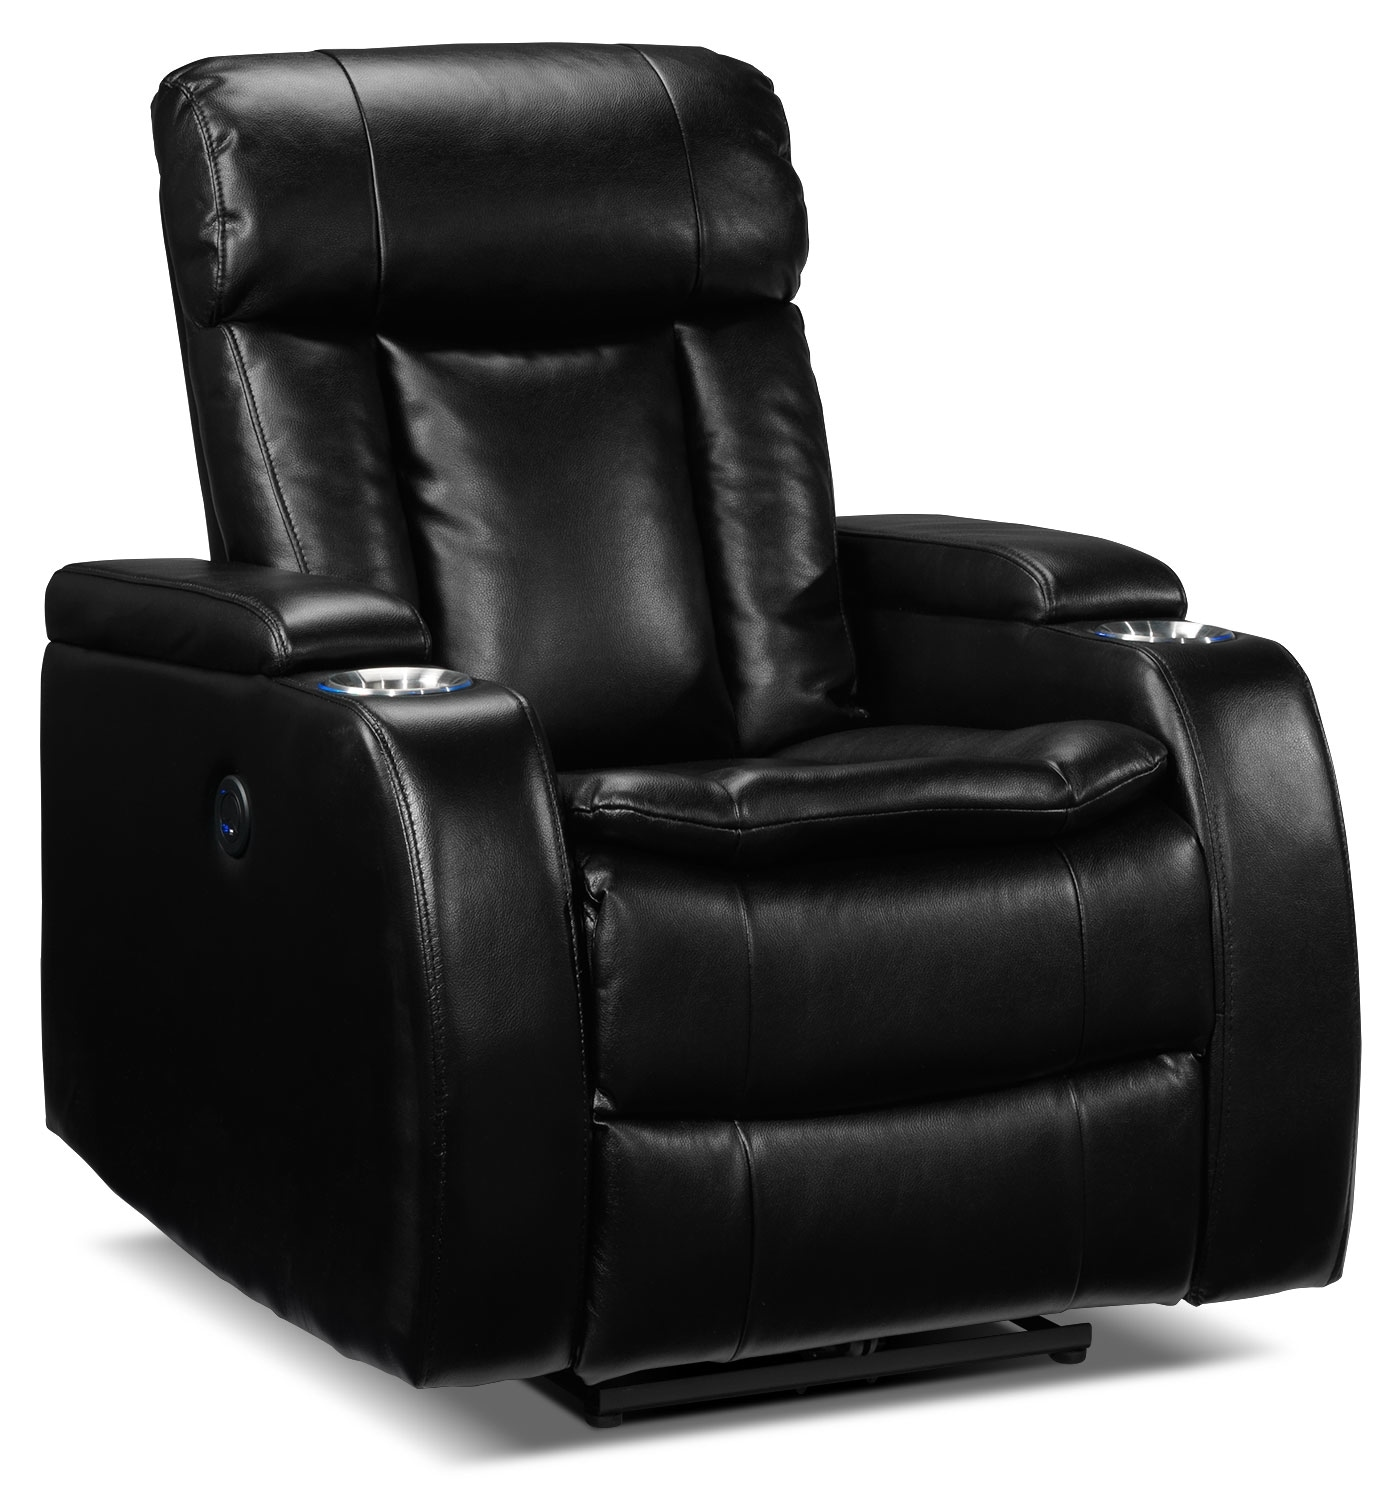 [Executive Power Recliner]